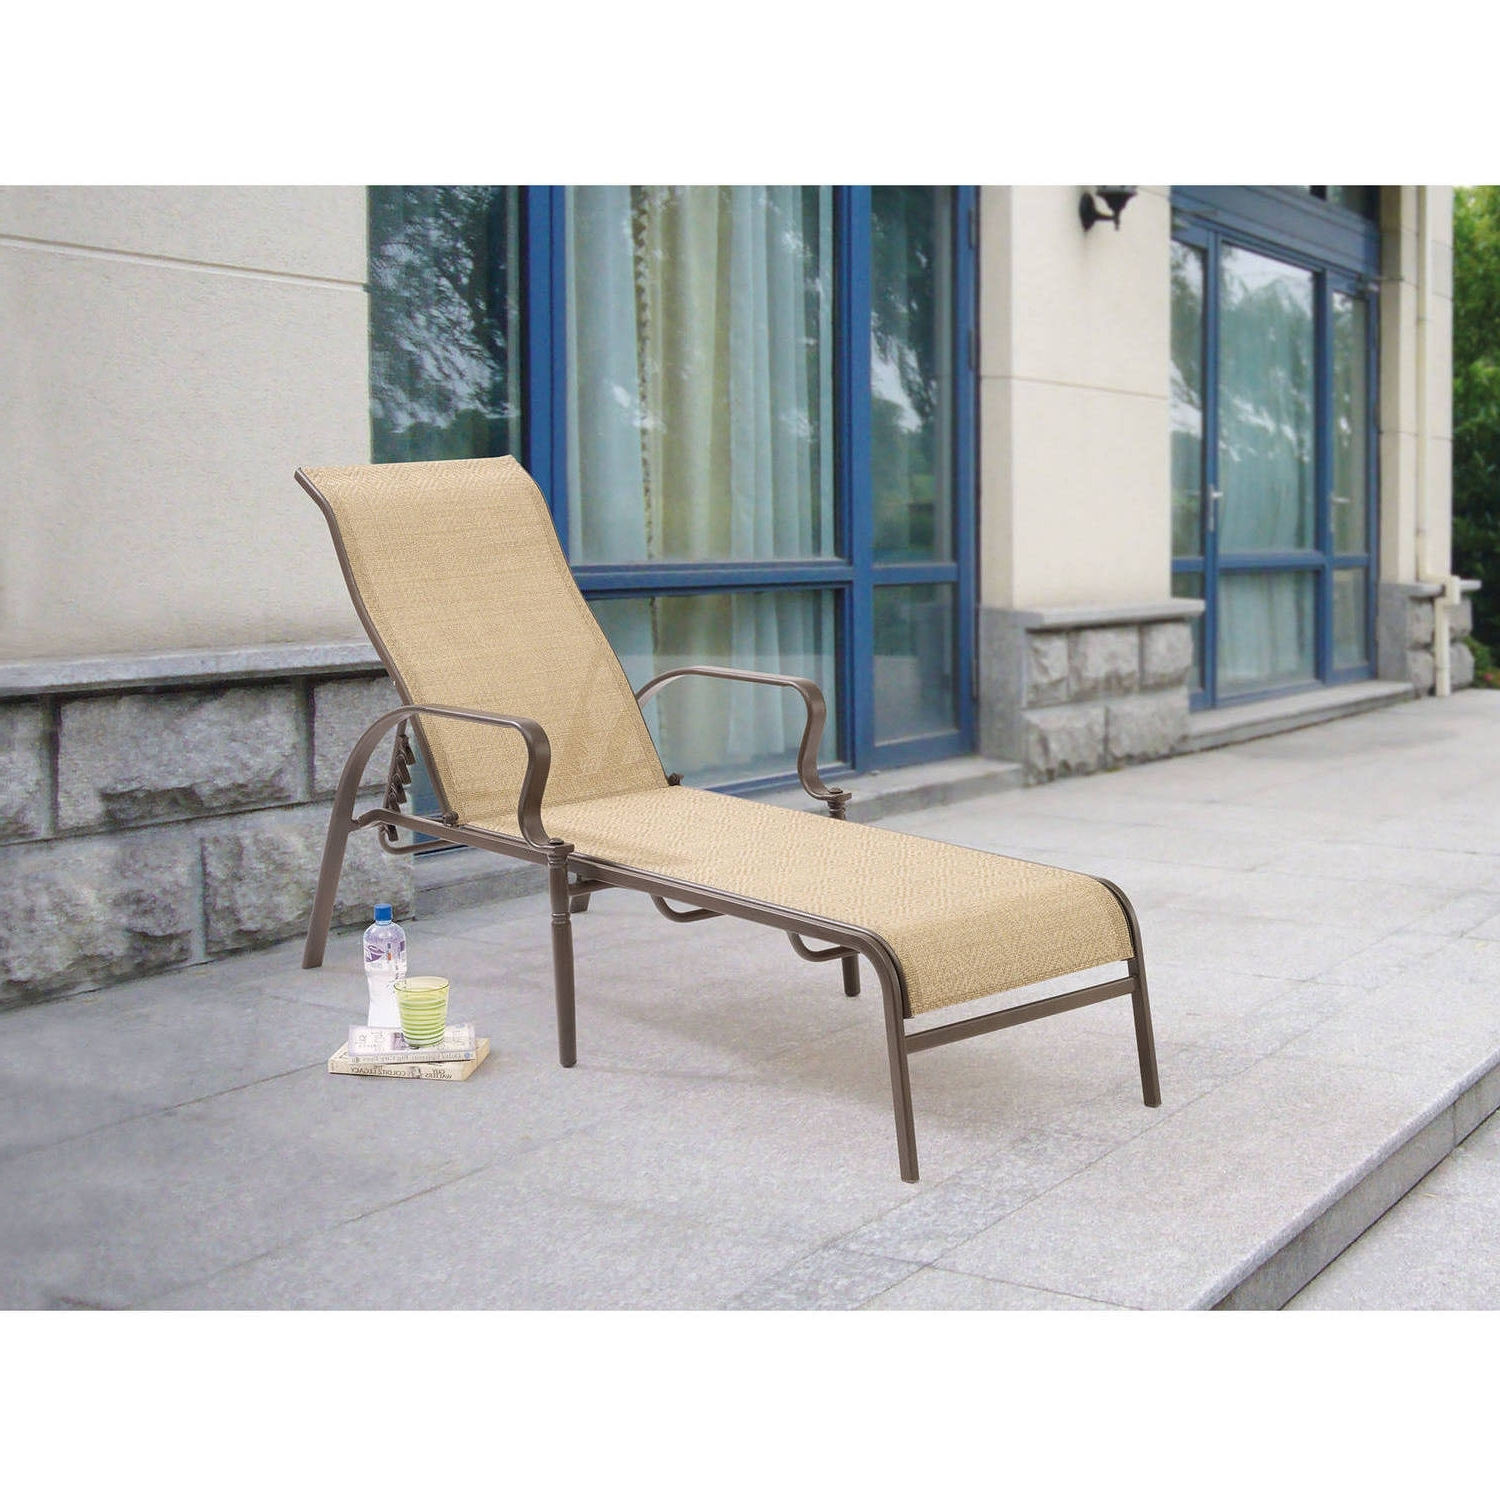 Trendy Mainstays Wesley Creek Sling Outdoor Chaise Lounge – Walmart With Walmart Chaise Lounges (View 9 of 15)